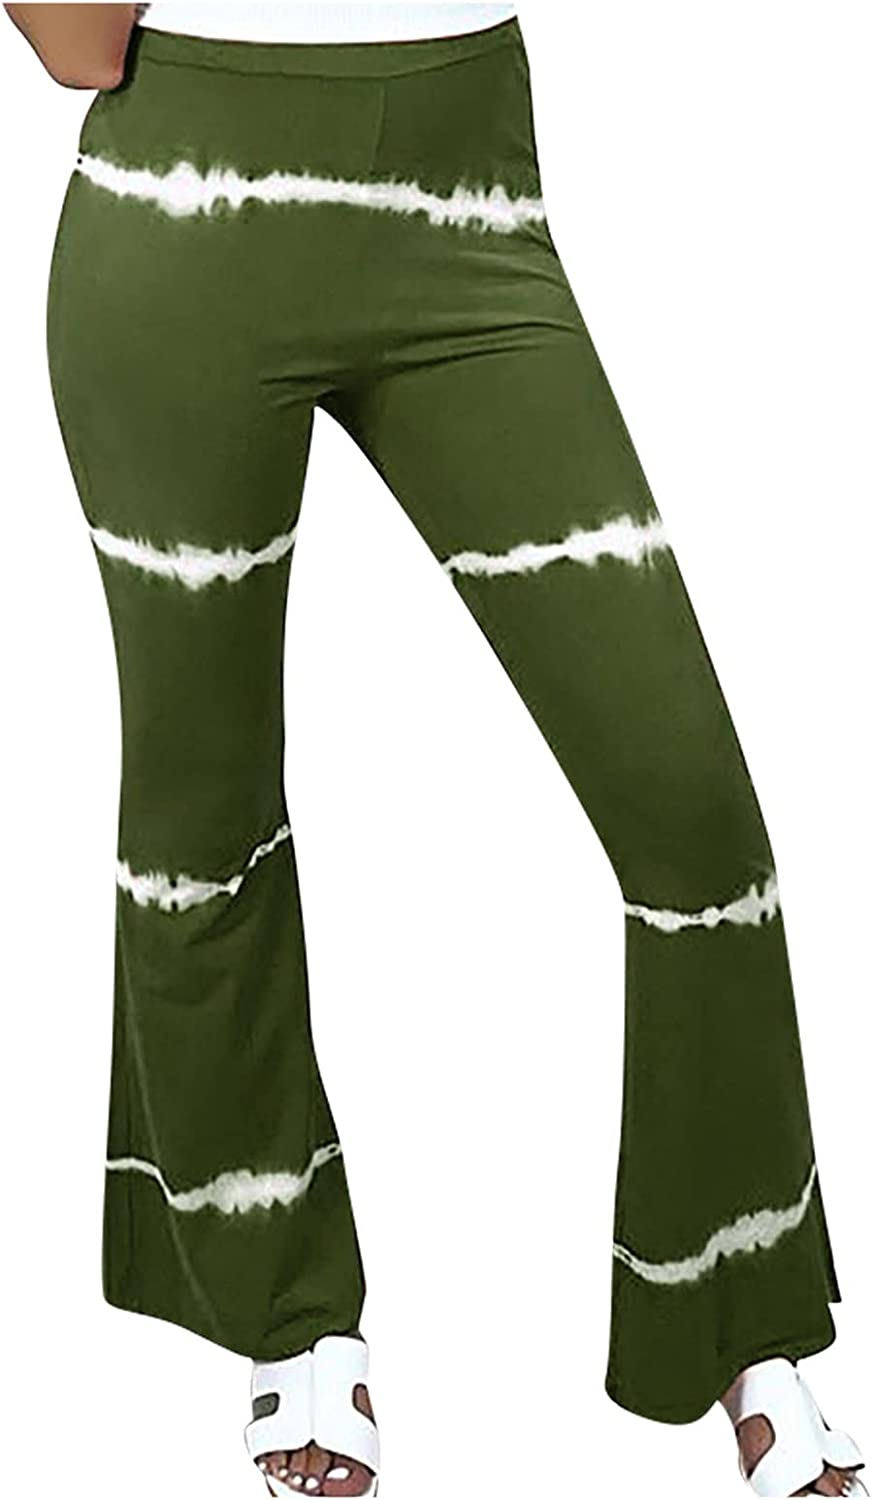 VonVonCo Flare Pants for Women Casual Elastic Girdle Waist Wide Leg Pants Trousers Stretch Printed Horn Green Small